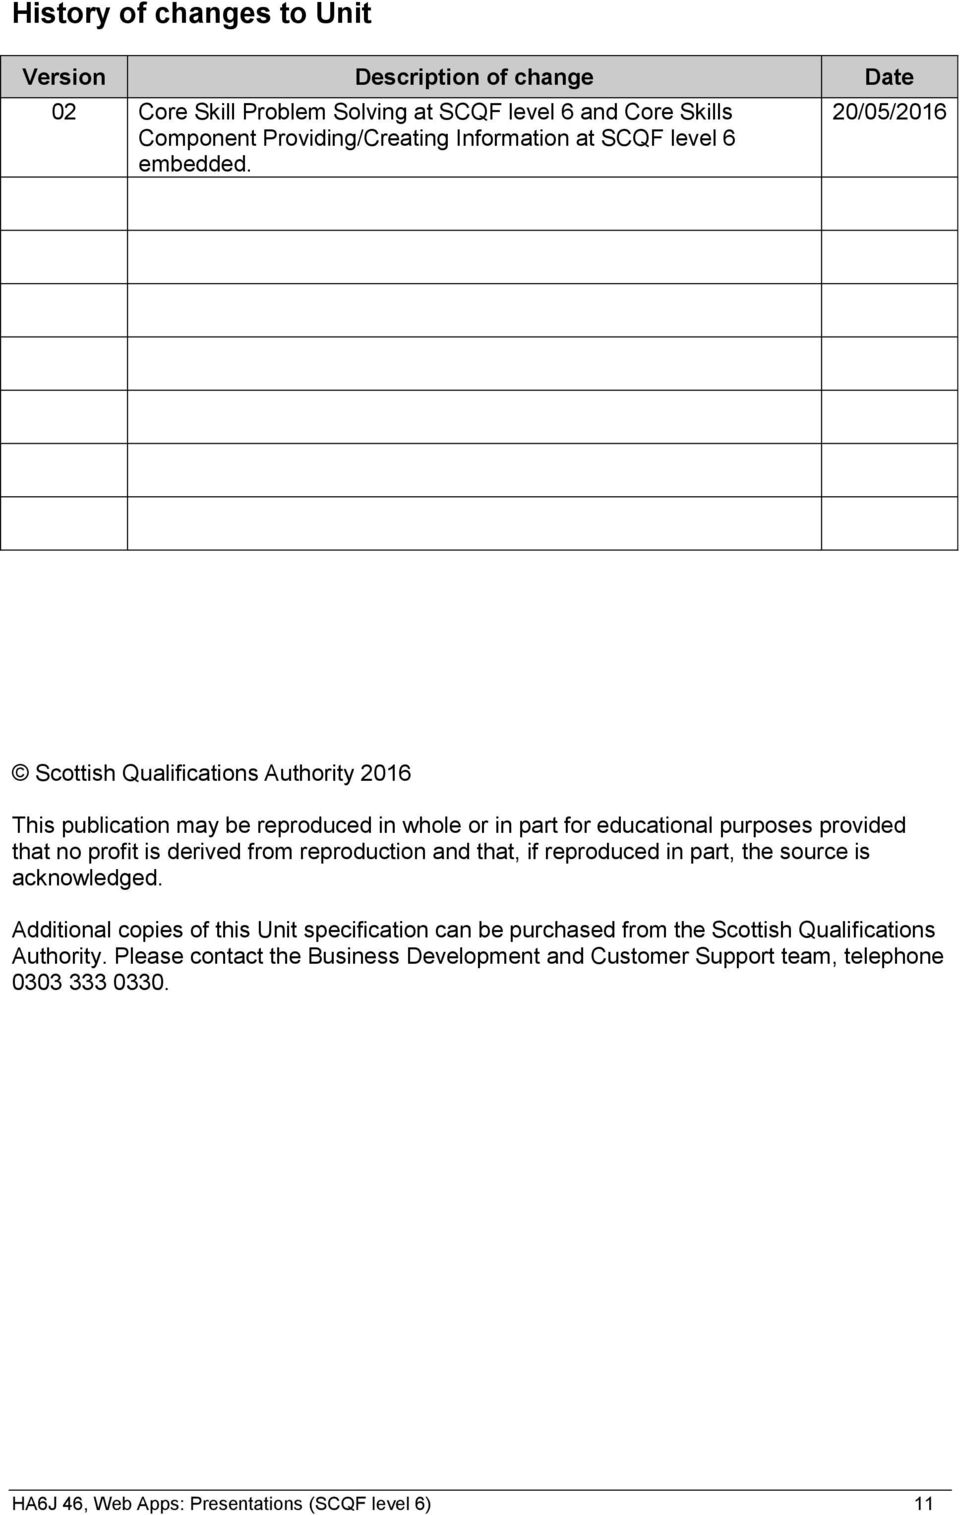 20/05/2016 Scottish Qualifications Authority 2016 This publication may be reproduced in whole or in part for educational purposes provided that no profit is derived from